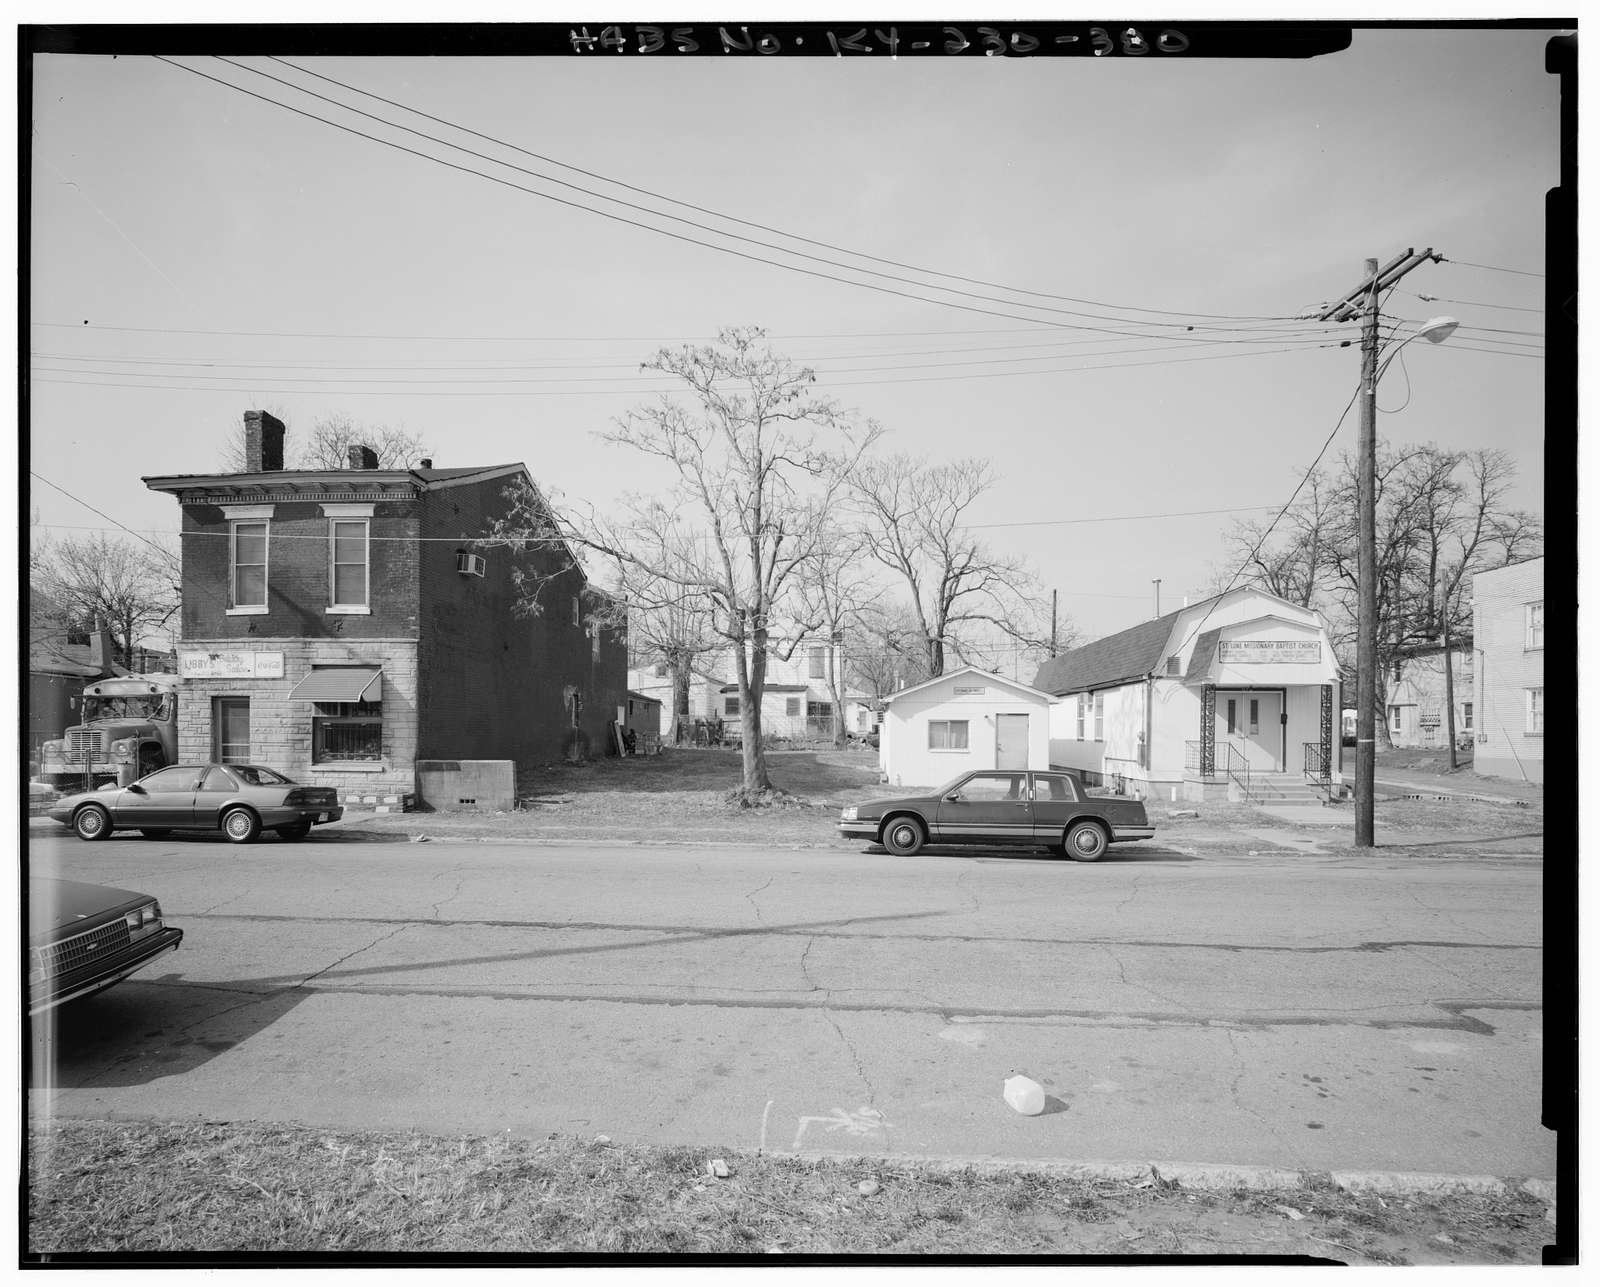 Russell Neighborhood, Bounded by Congress & Esquire Alley, Fifteenth & Twenty-first Streets, Louisville, Jefferson County, KY